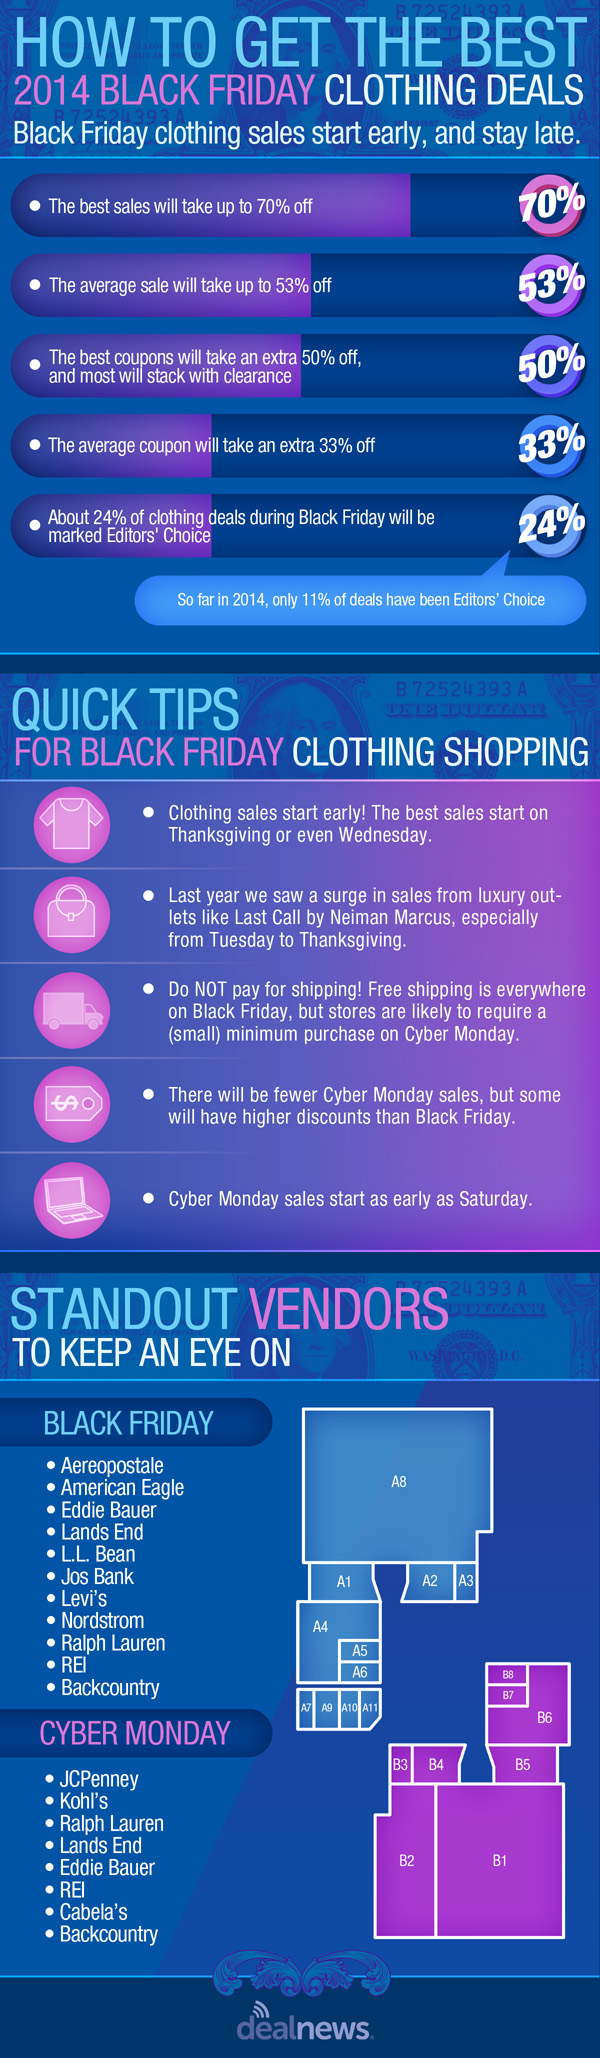 Black Friday clothes